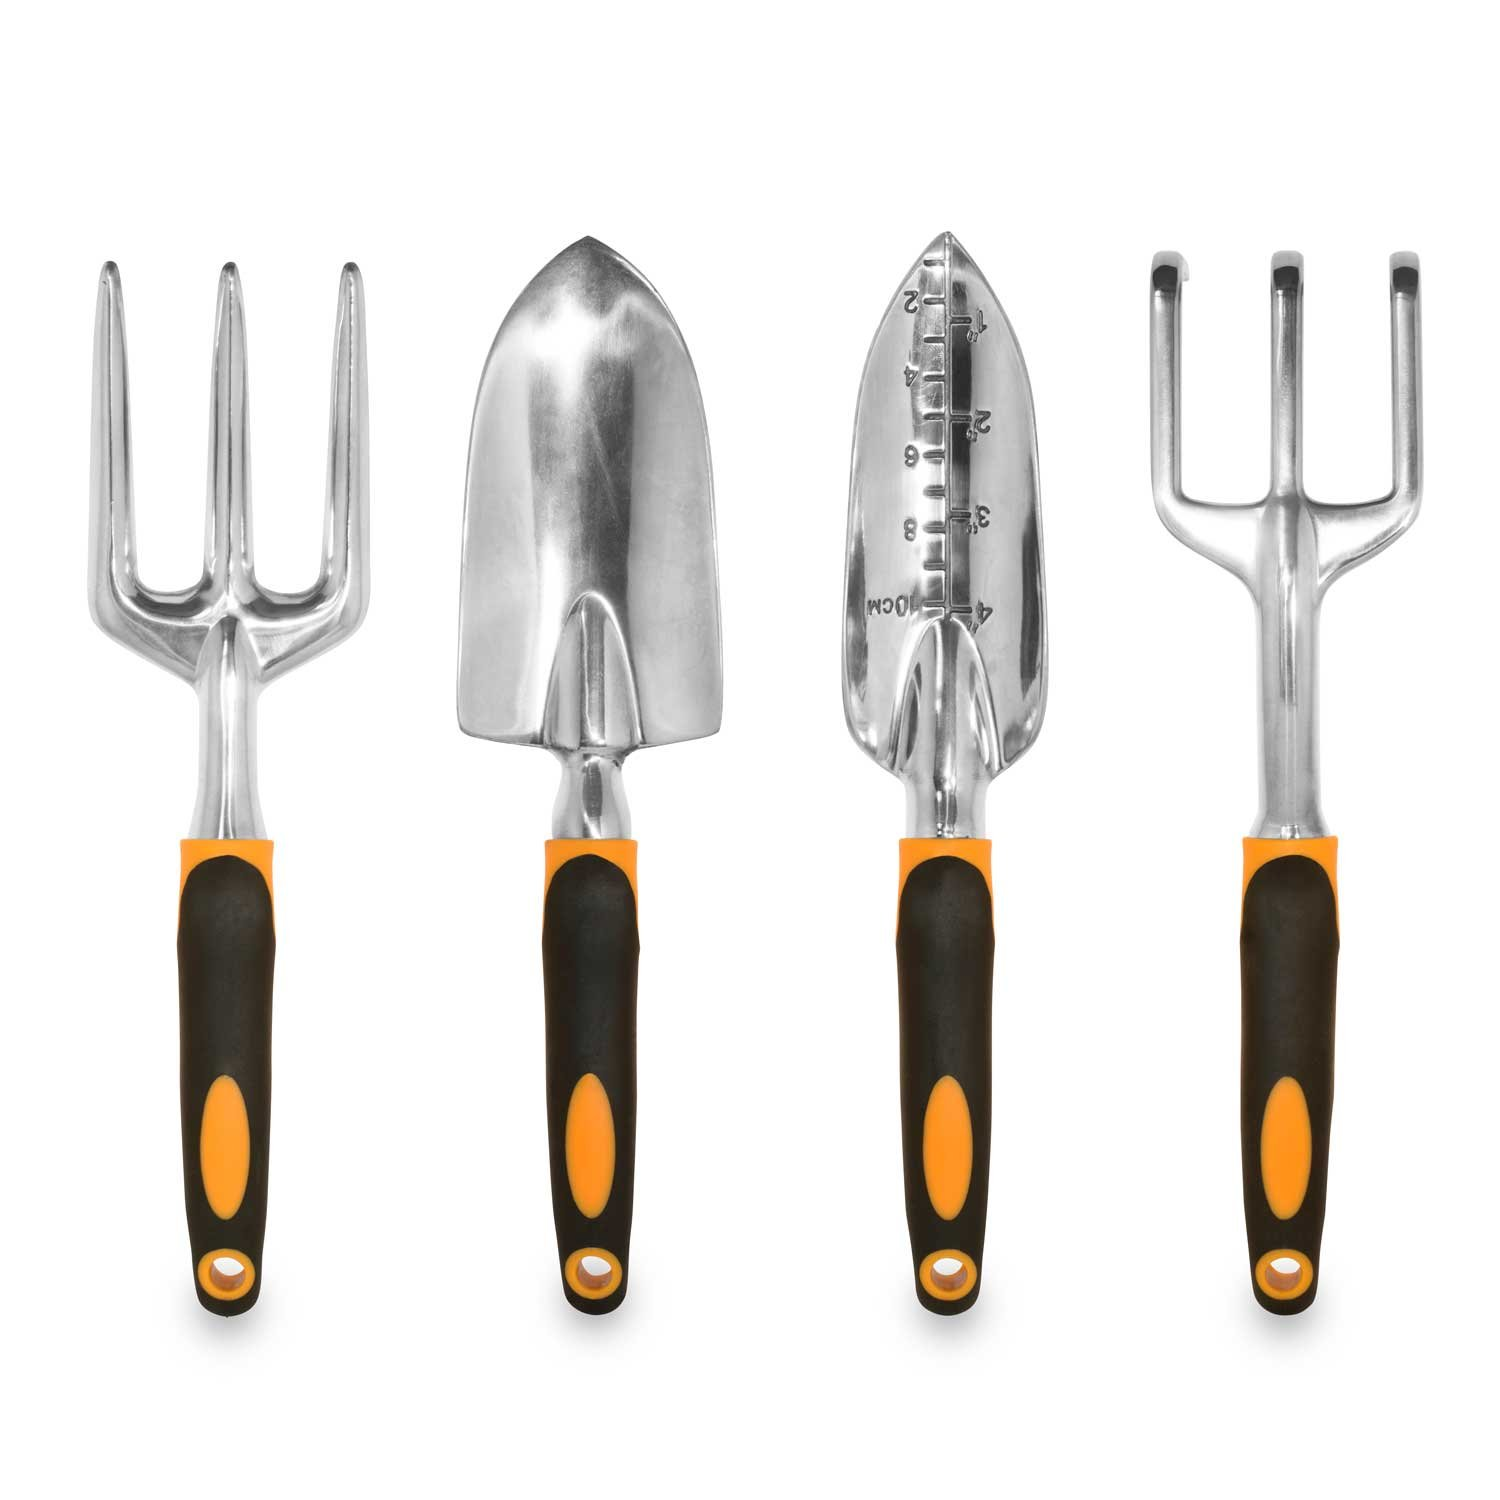 Gardenhome ergonomic garden tools 4 piece tool set ebay for Home and garden equipment